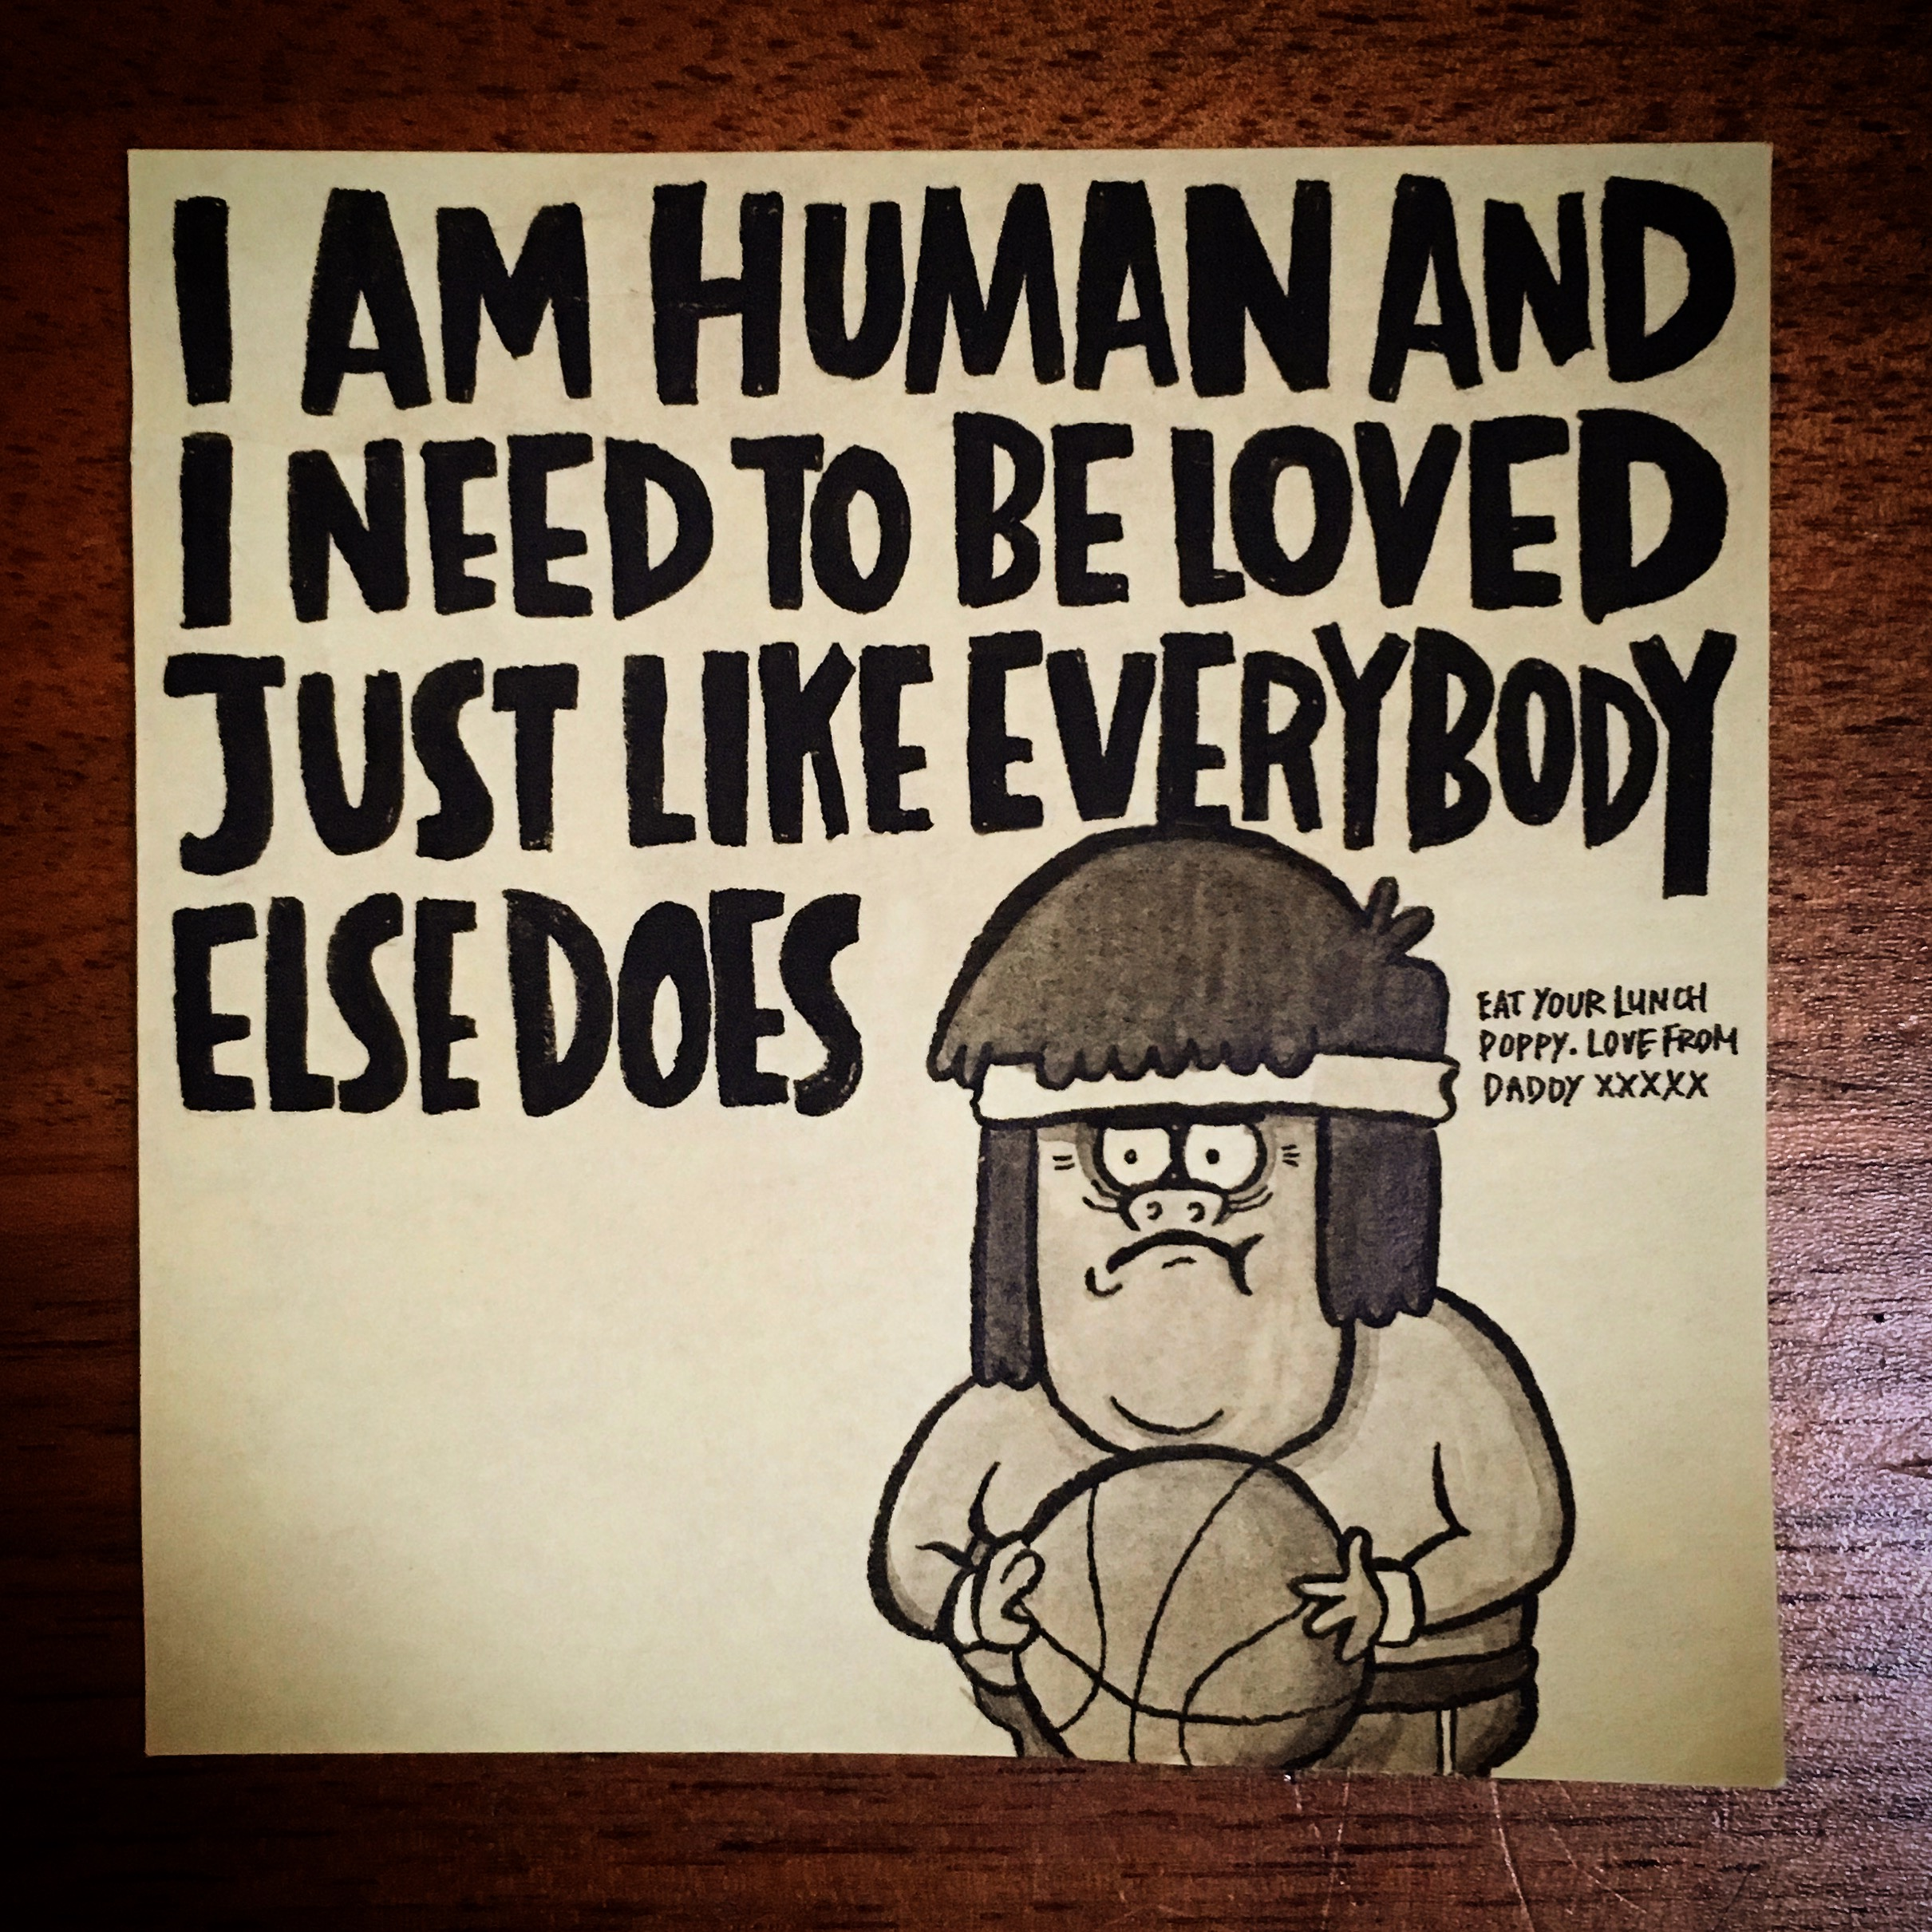 Muscle Man (from Regular Show)